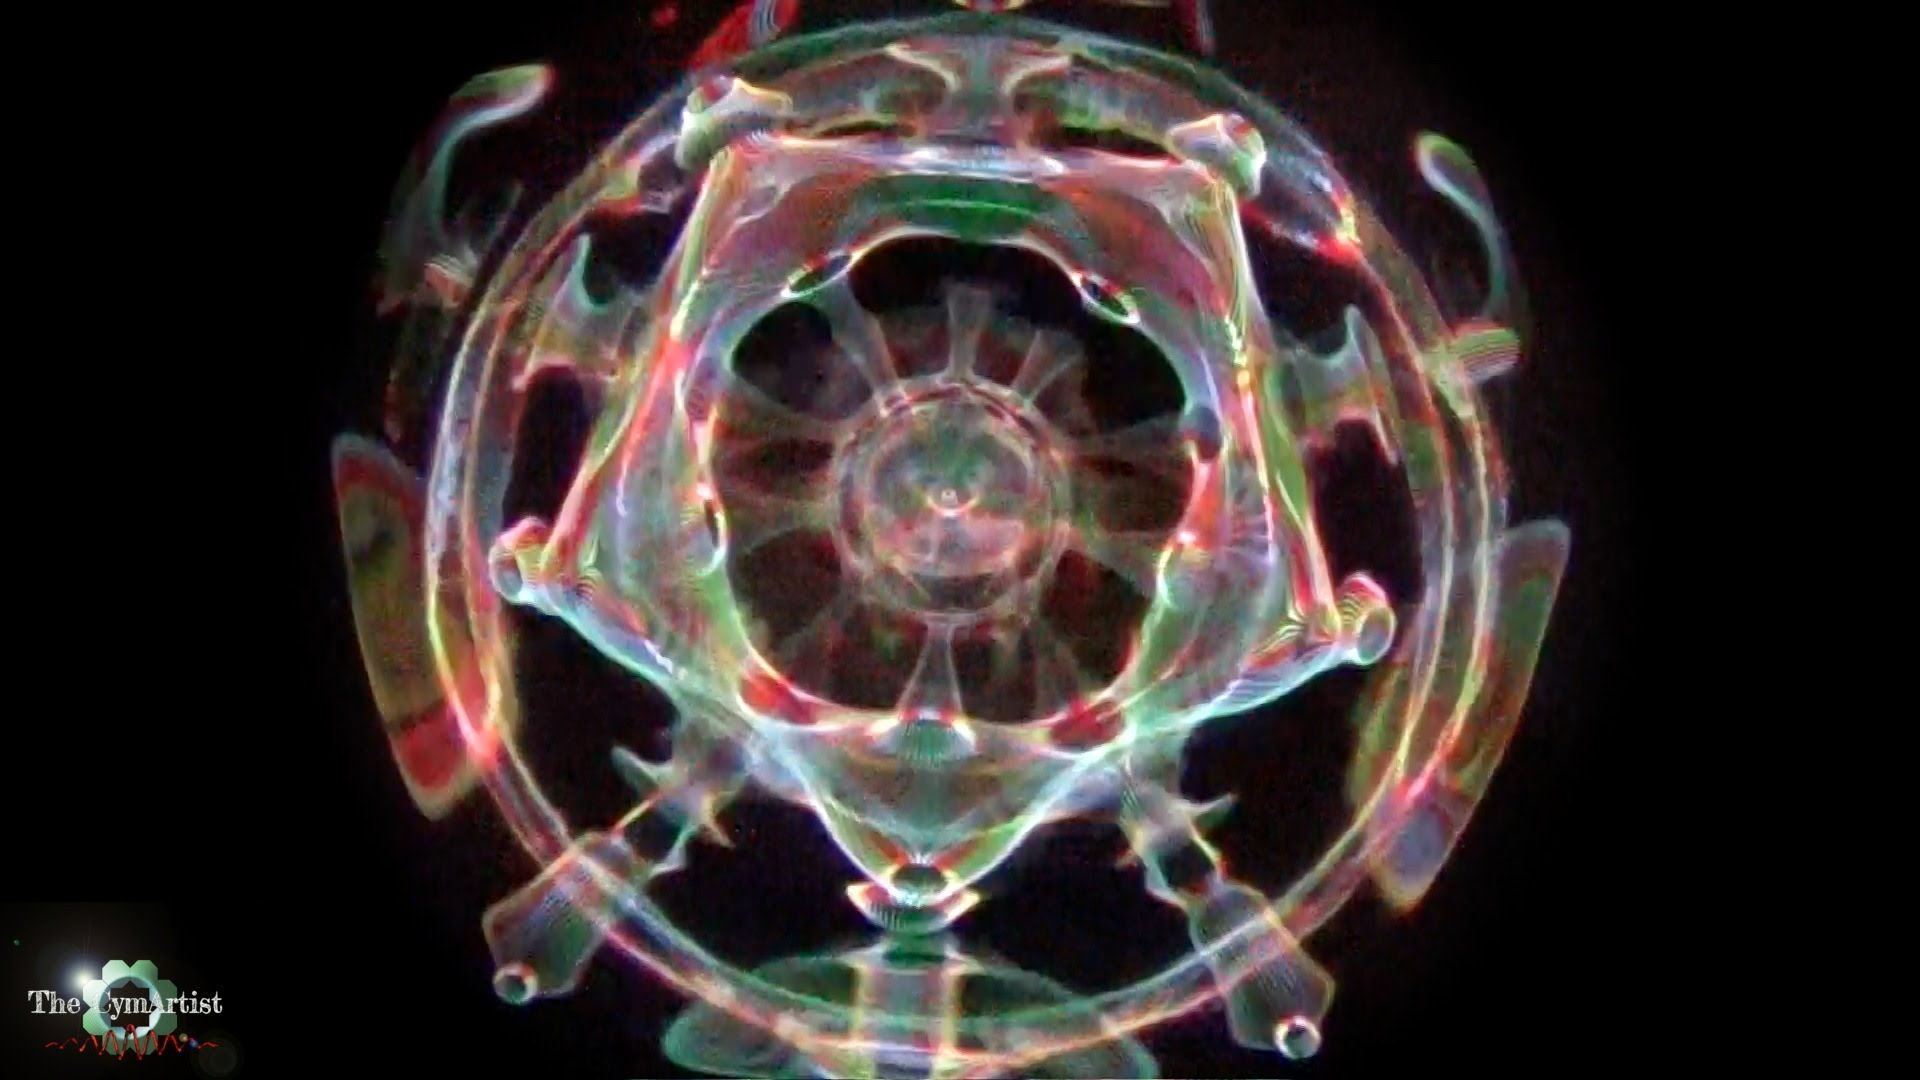 Cymatics experiment conducted only with Sound, Water and